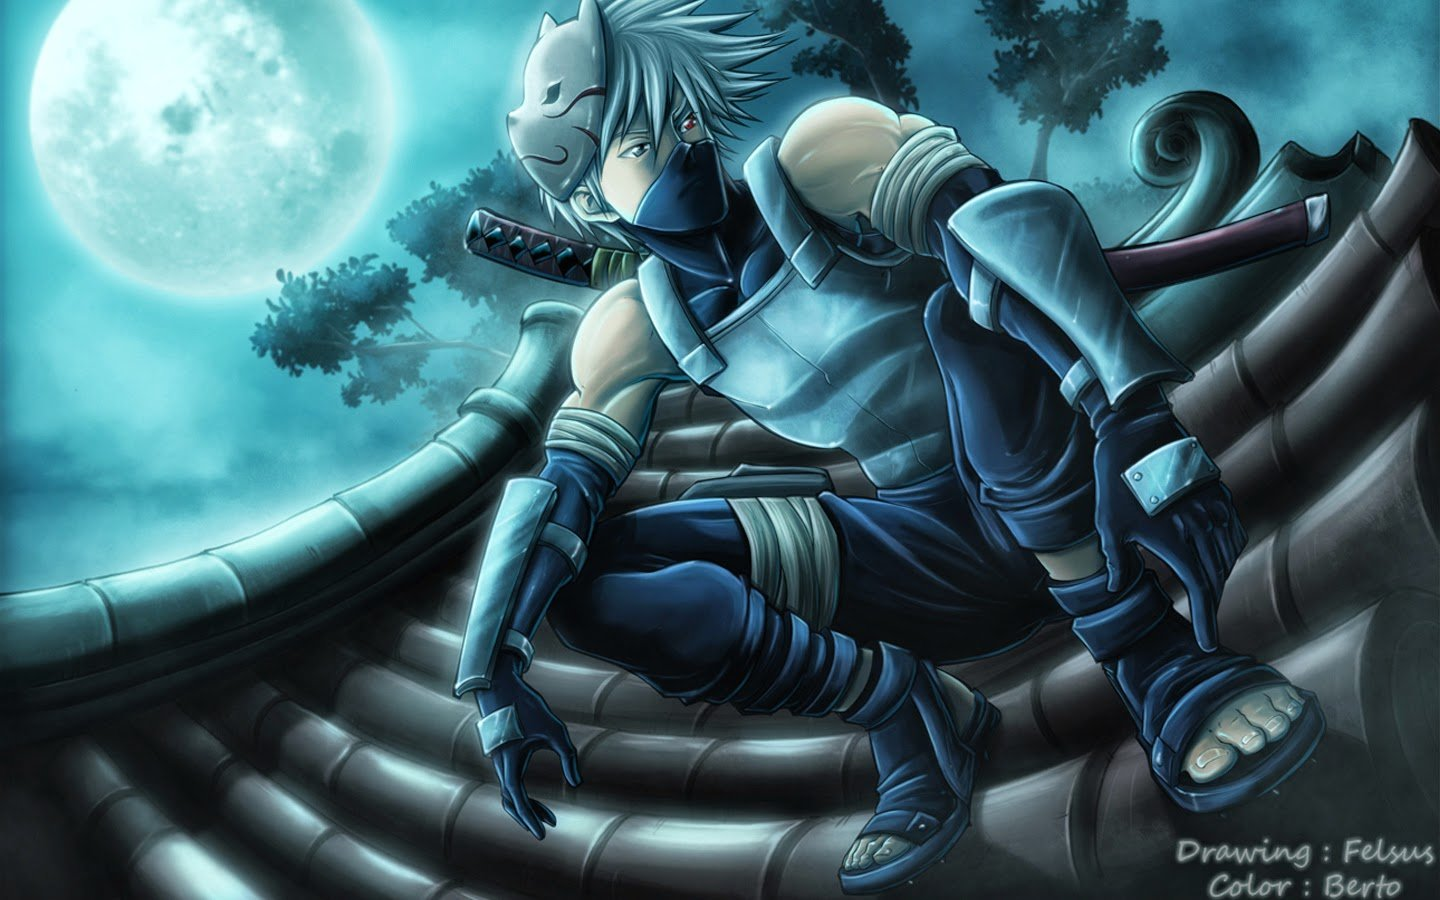 Hatake Katana Full Moon Ninja Anime Wallpaper HD g08 Male Weapon 1440x900